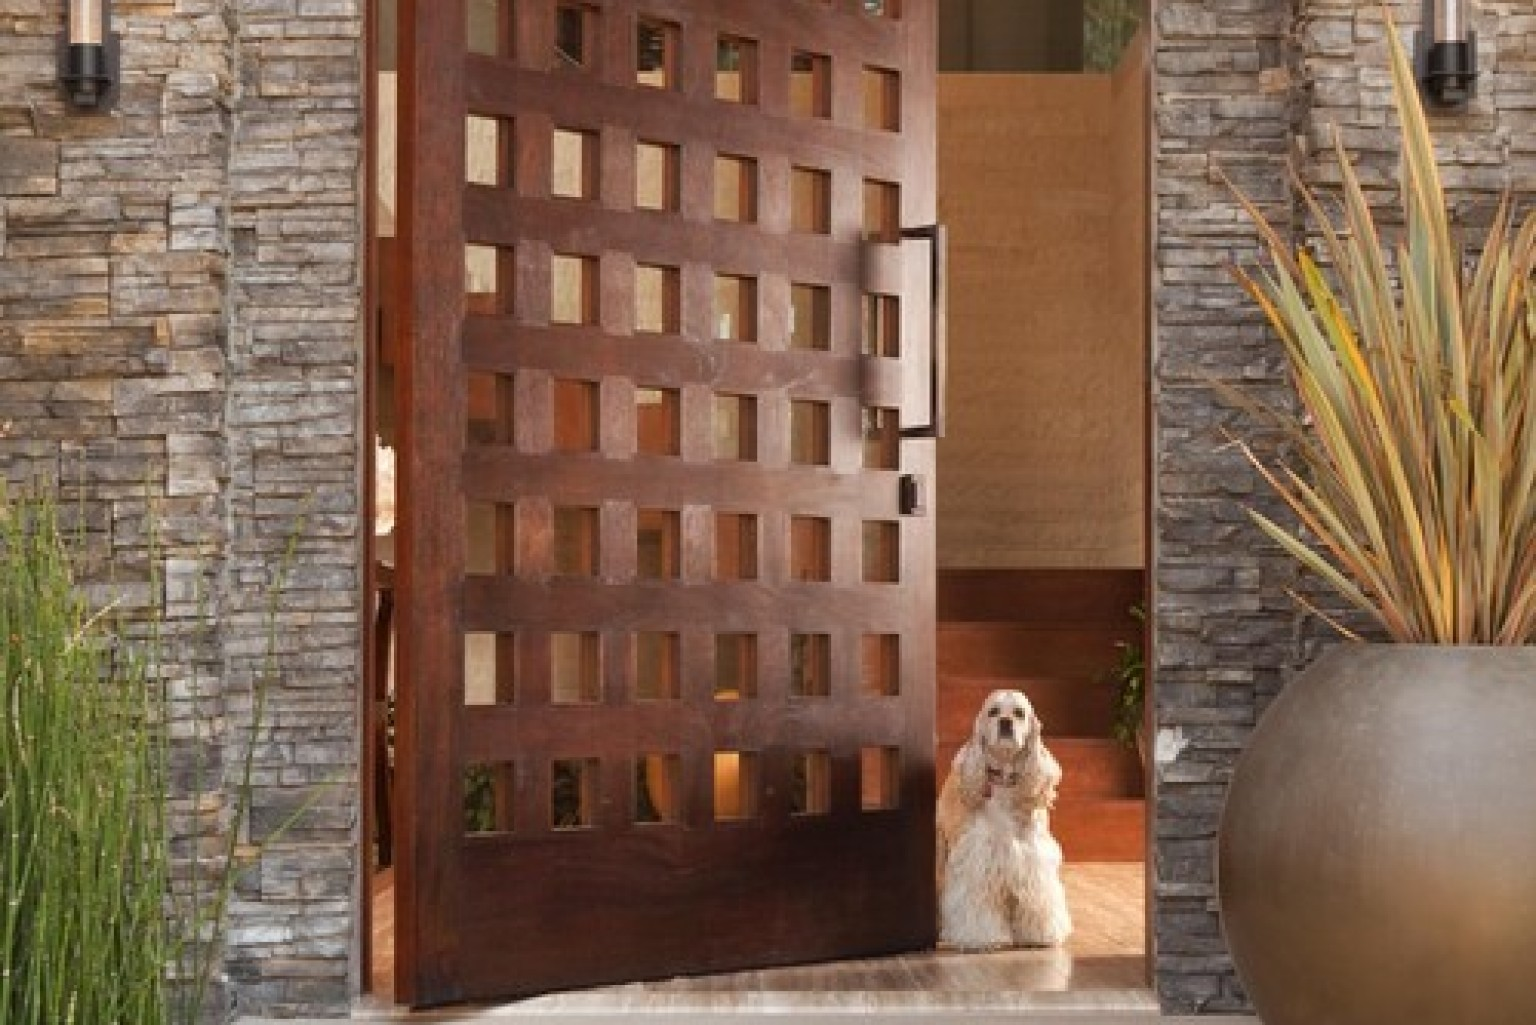 Main Doors Design sun design hand carving main door design 12 Seriously Cool Front Door Designs That Will Boost Your Curb Appeal Photos Huffpost